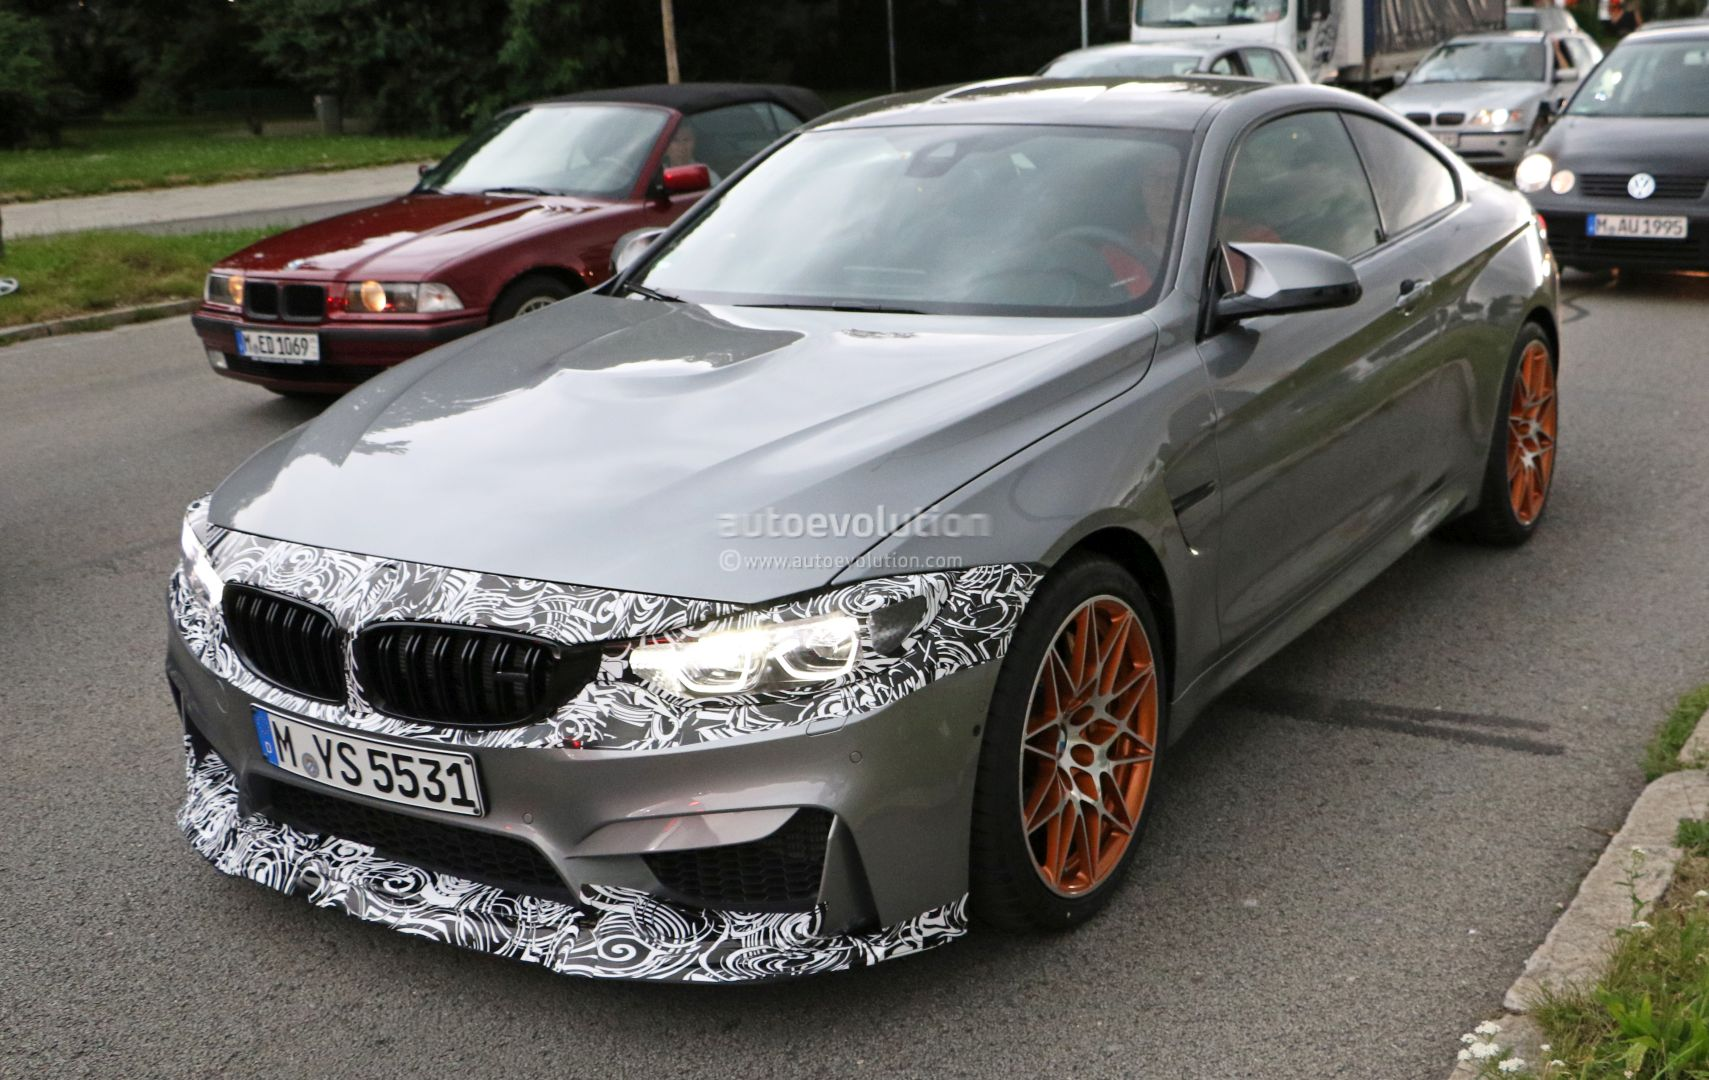 Bmw M4 Gts For Sale >> 2018 BMW M4 Facelift (LCI) Spied with M4 GTS-like Camouflaged Front Bumper - autoevolution